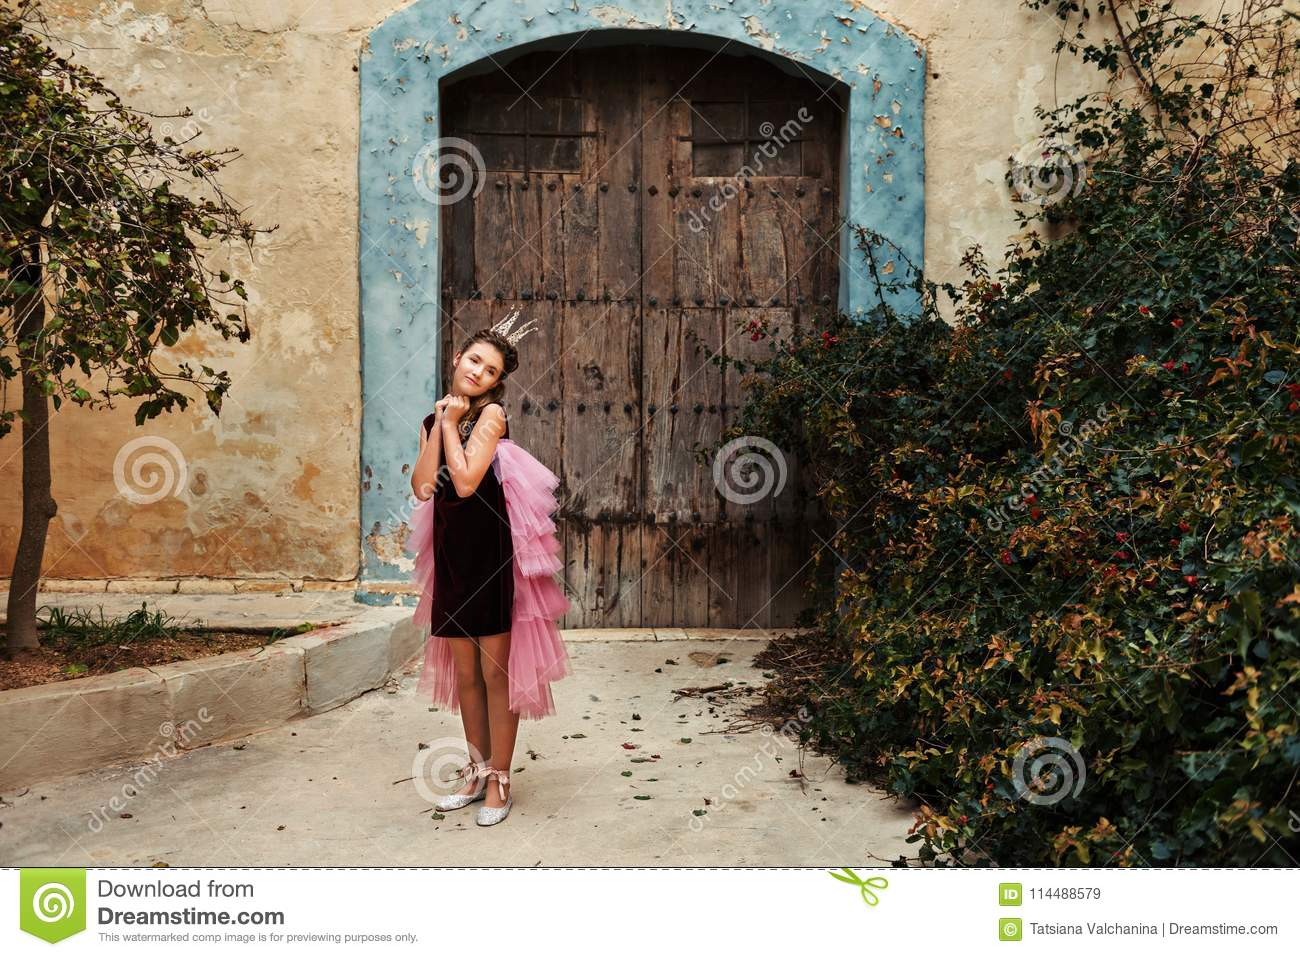 A sweet princess girl in a crown and a burgundy dress with a pink veil is pampered in front of an old house with an ancient wooden